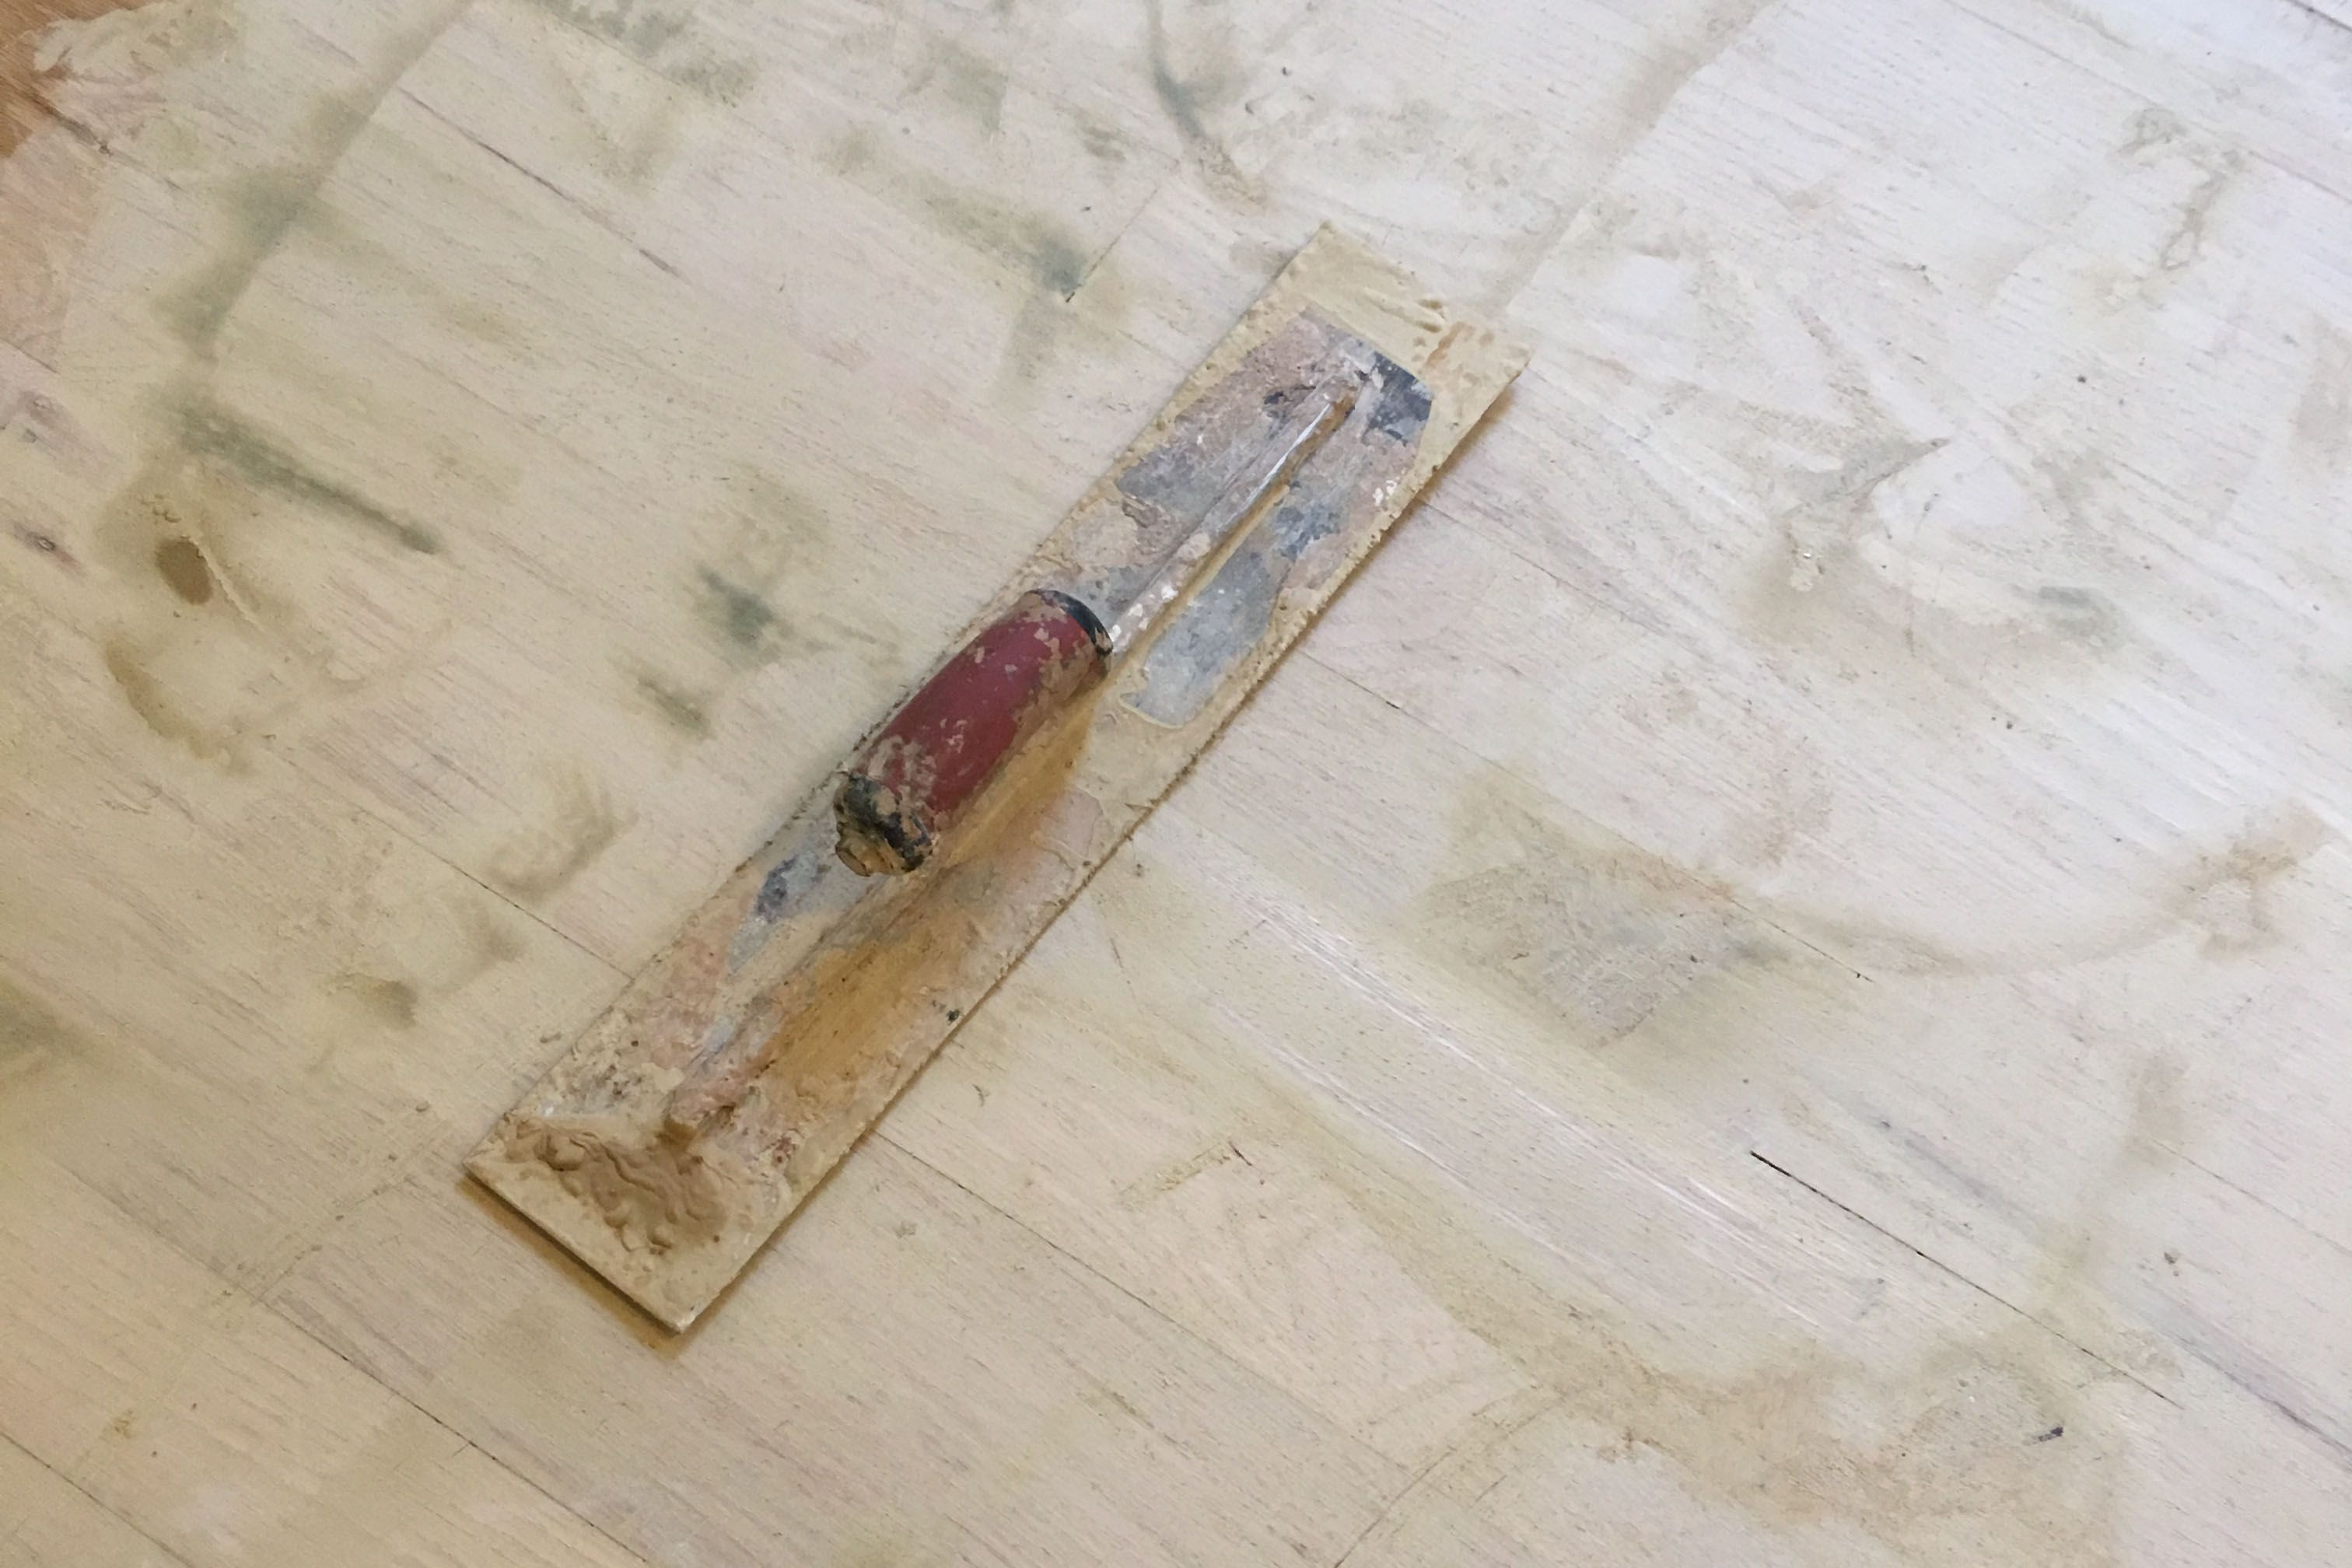 Best Hardwood Floor Filler Of 7 Things to Know before You Refinish Hardwood Floors Pertaining to Trough Hardwood Floor Manhattan Avenue Via Smallspaces About Com 579138783df78c173490f8a5